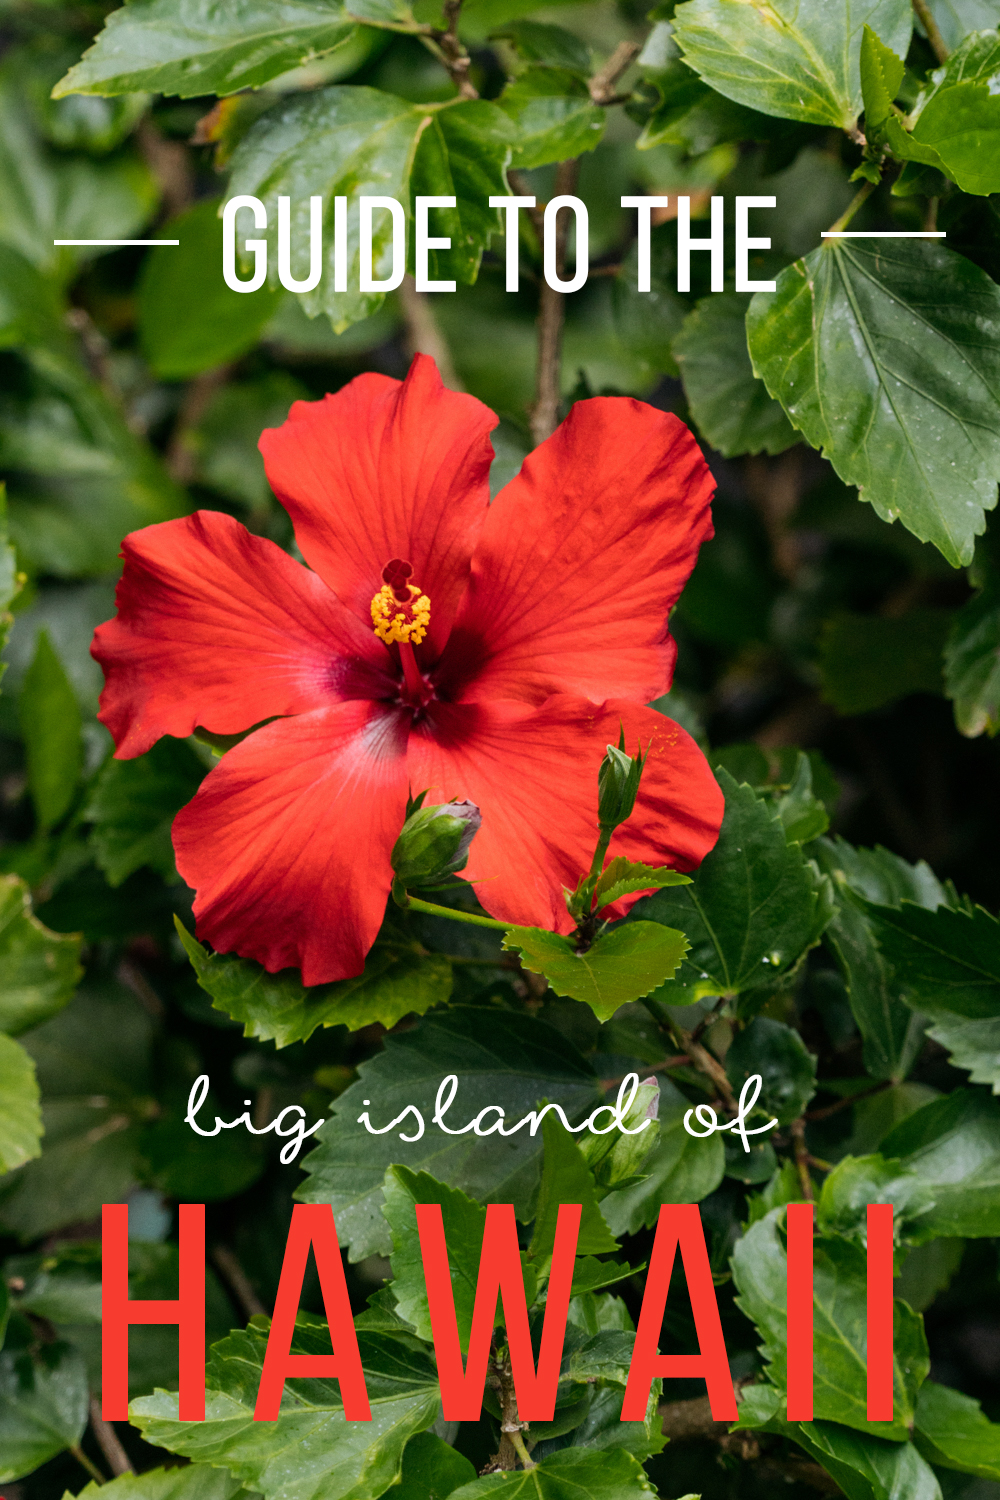 guide to hawaii big island